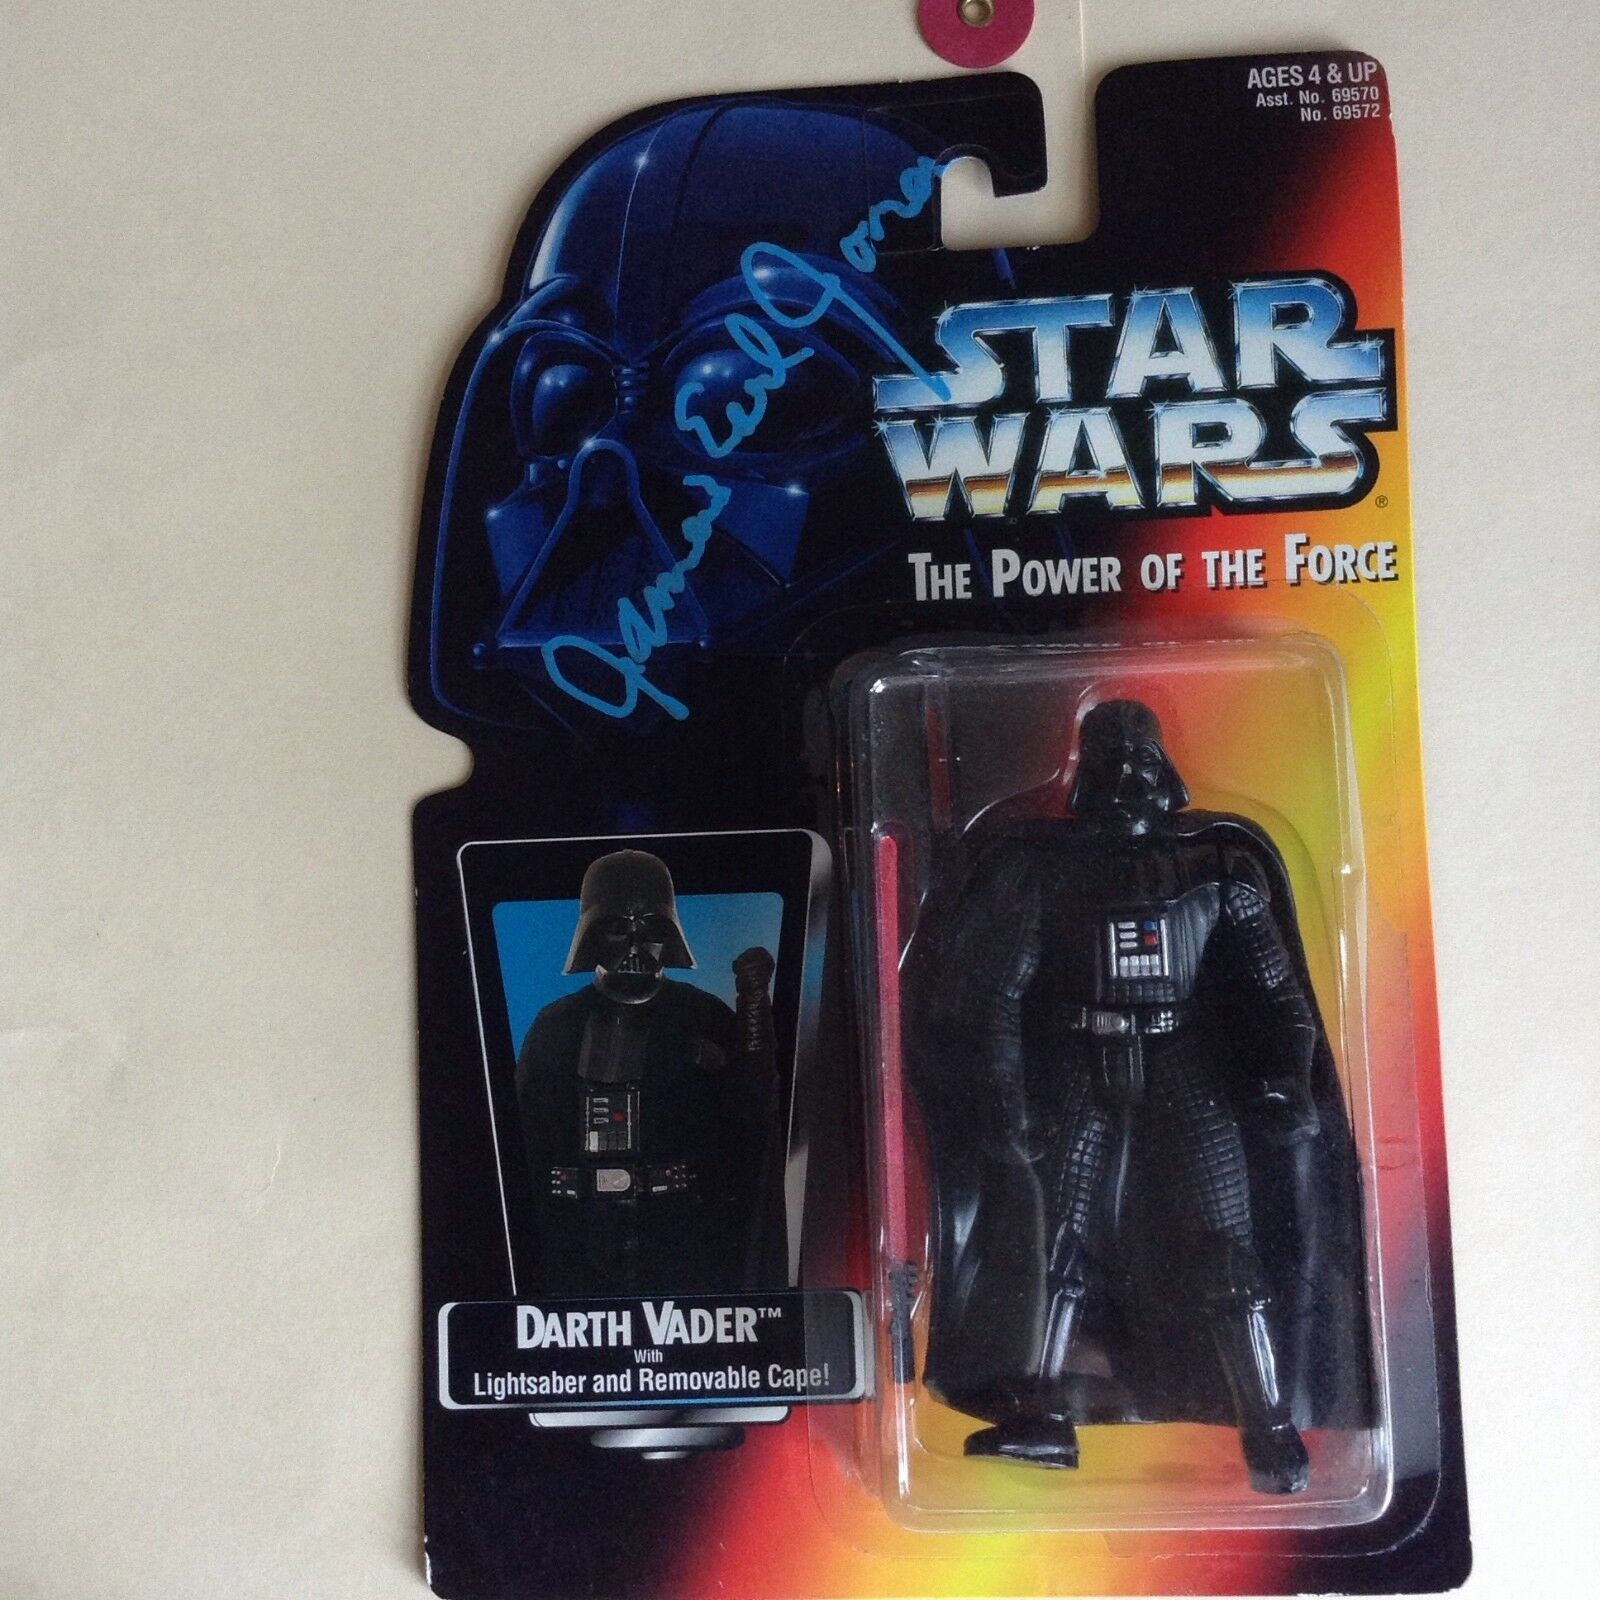 James Earl Jones signed autograph Darth Vader Star Wars Kenner figure RARE, COA